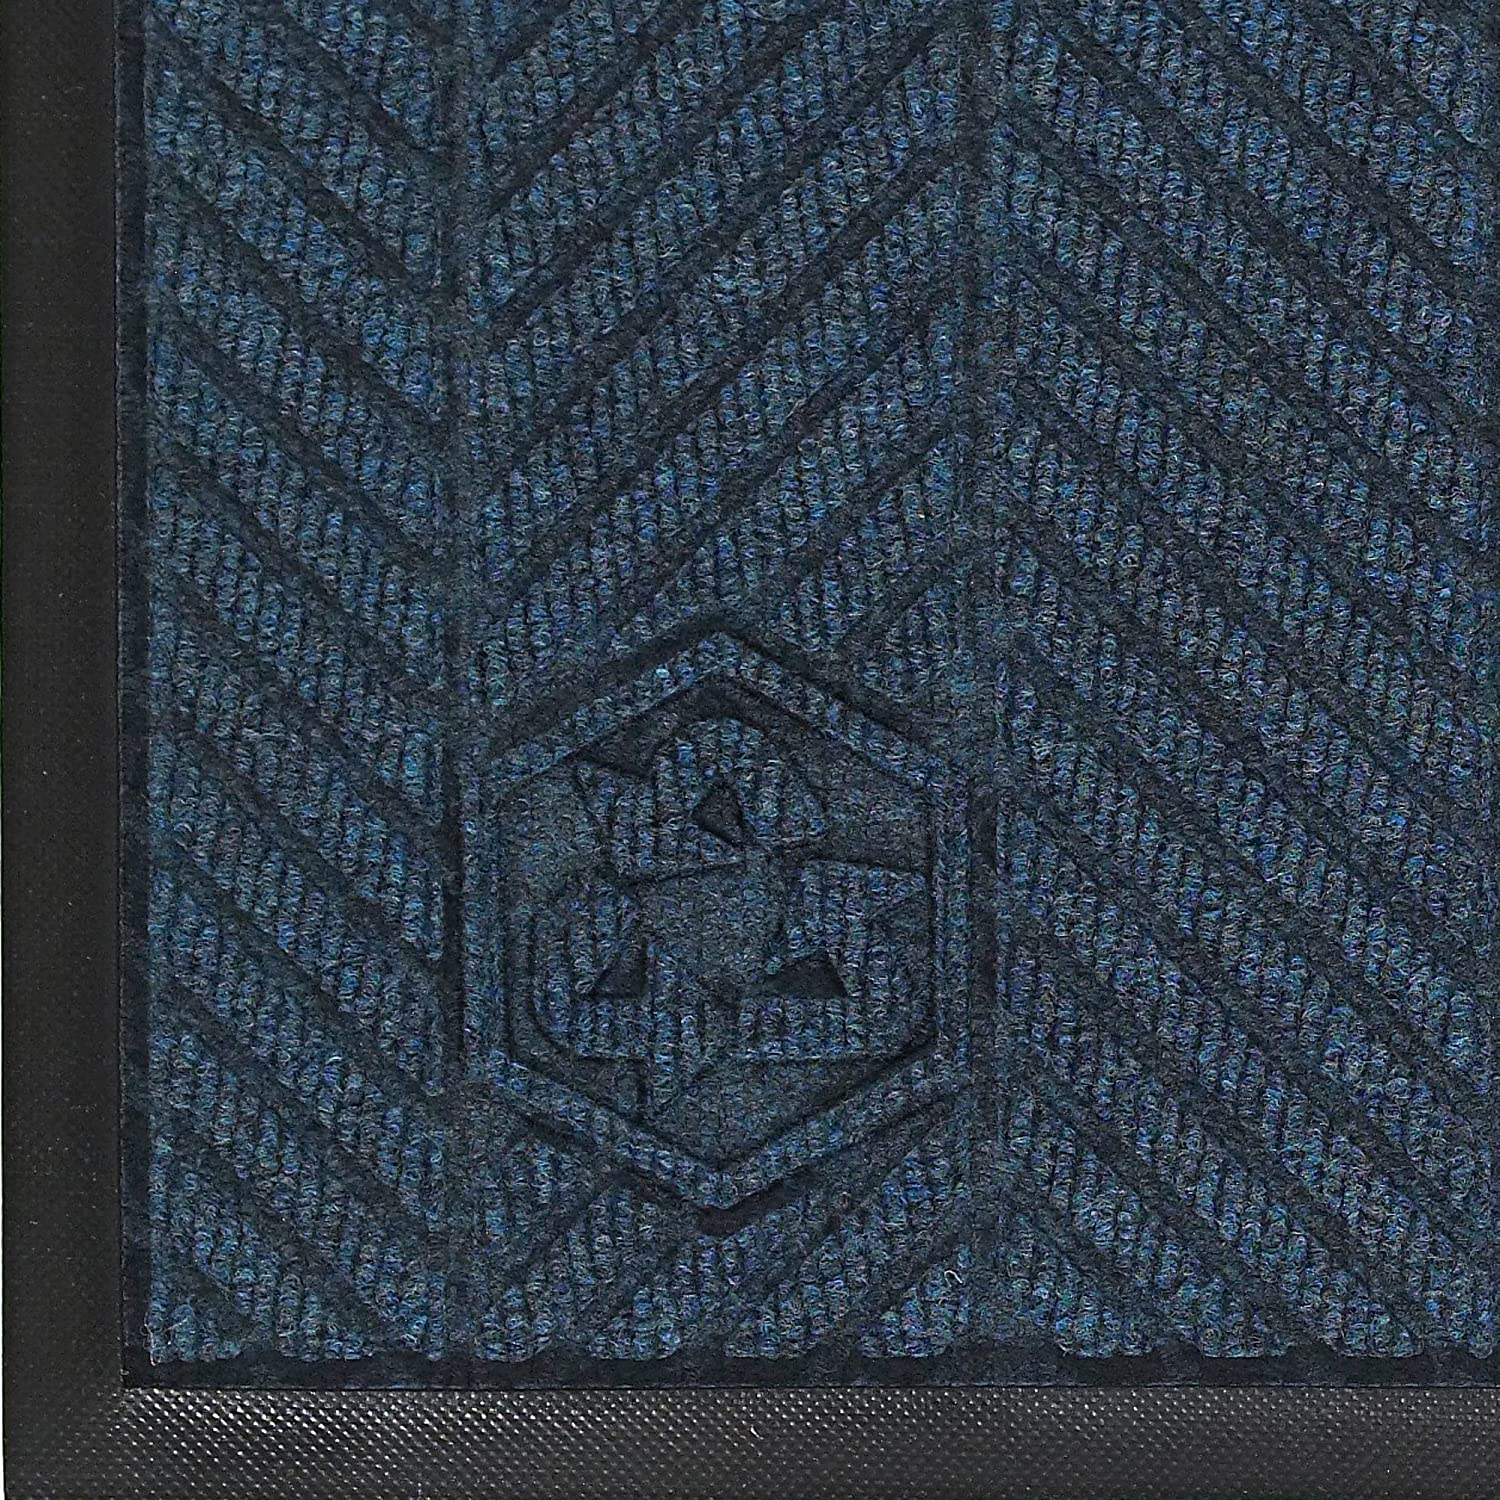 3 Length x 2 Width Black Smoke SBR Rubber Backing M+A Matting 2240 Waterhog Classic ECO Elite PET Polyester Entrance Indoor Floor Mat 3//8 Thick